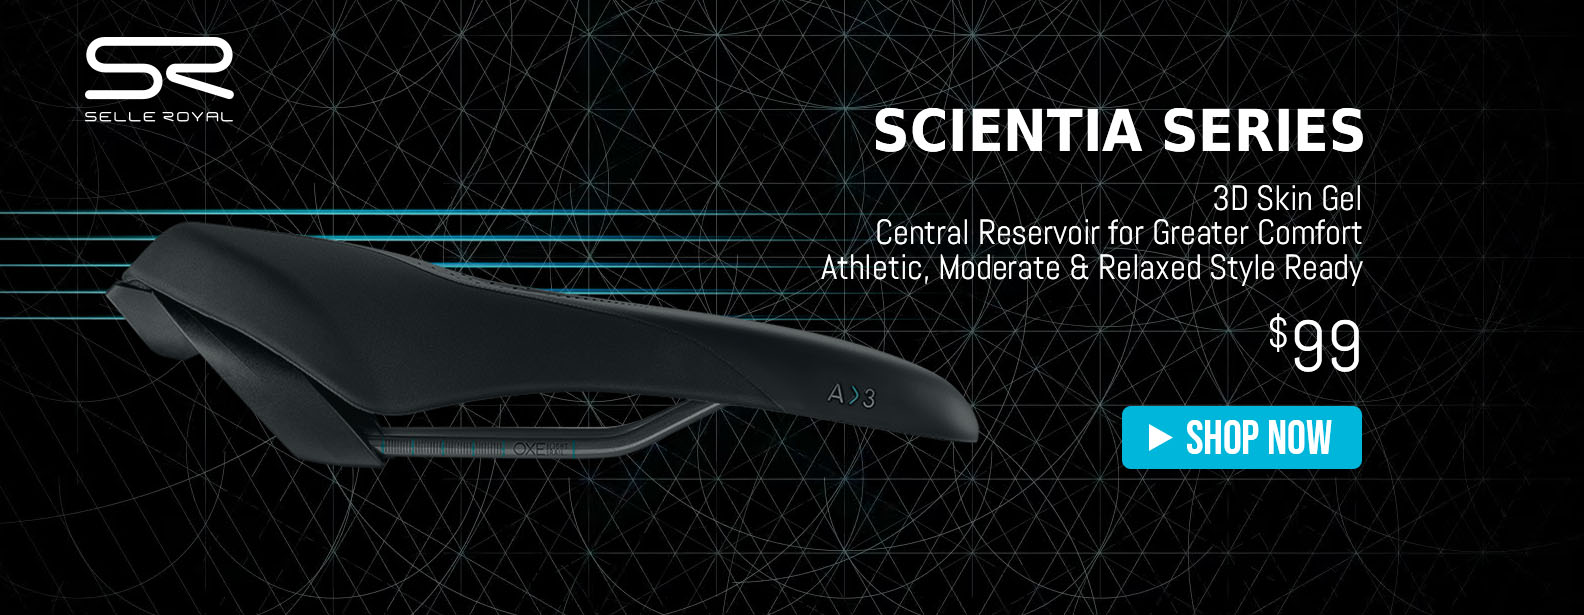 Selle Royal Scientia Collection